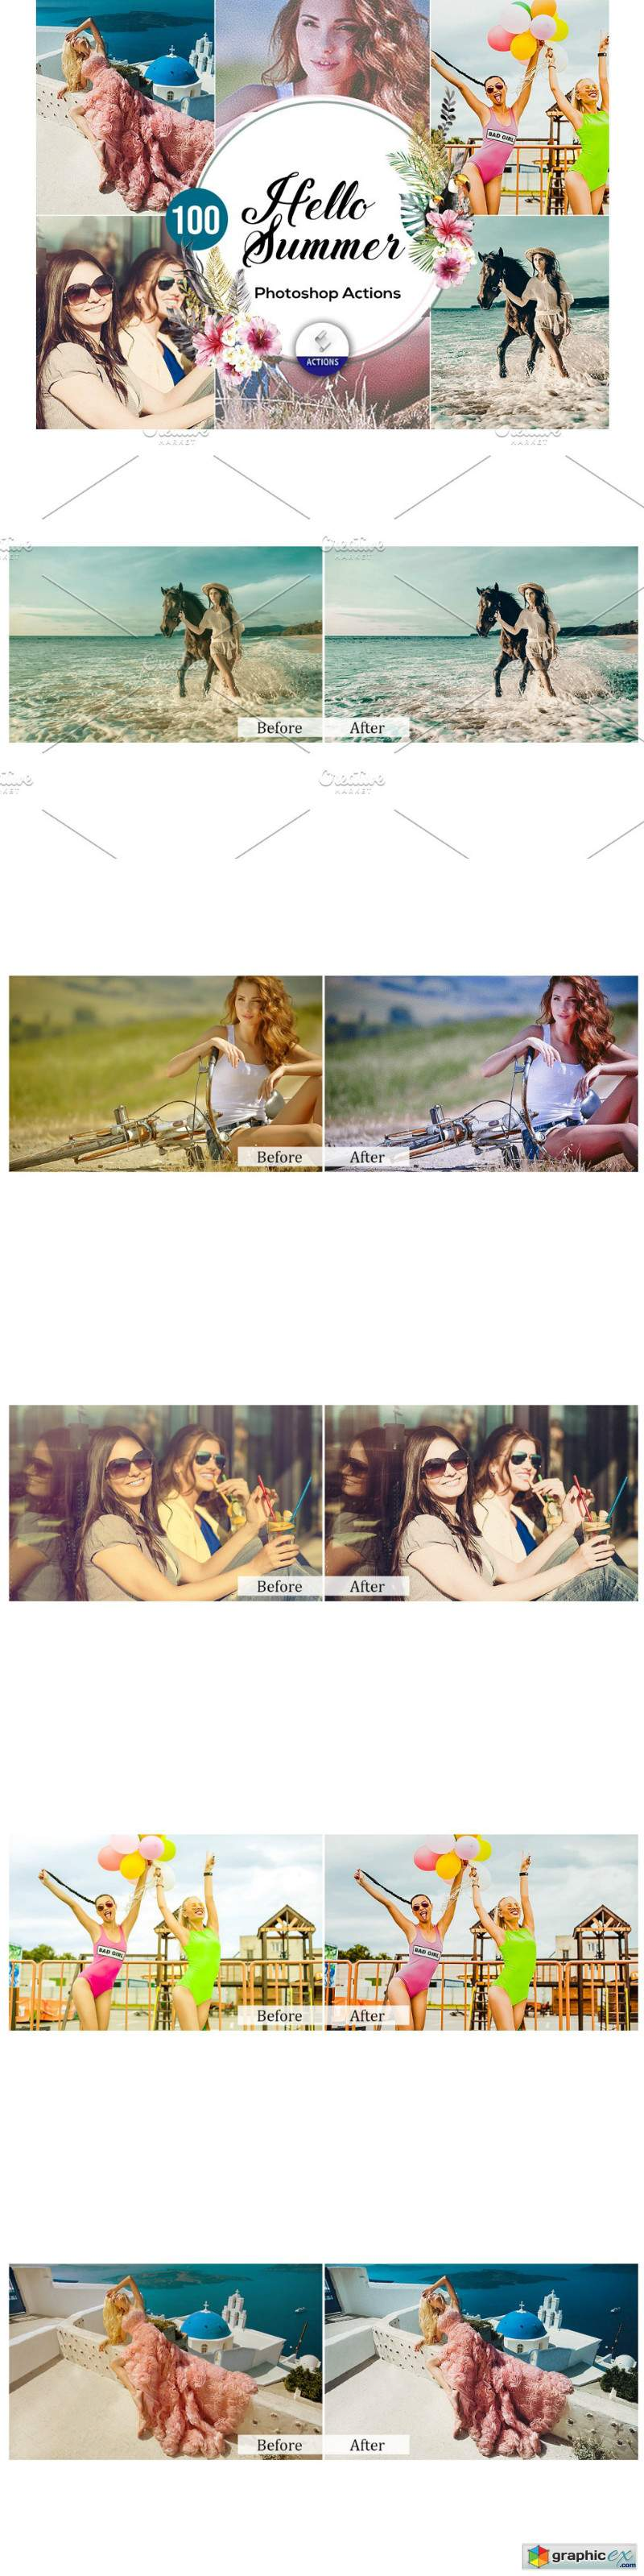 100 Hello Summer Photoshop Actions